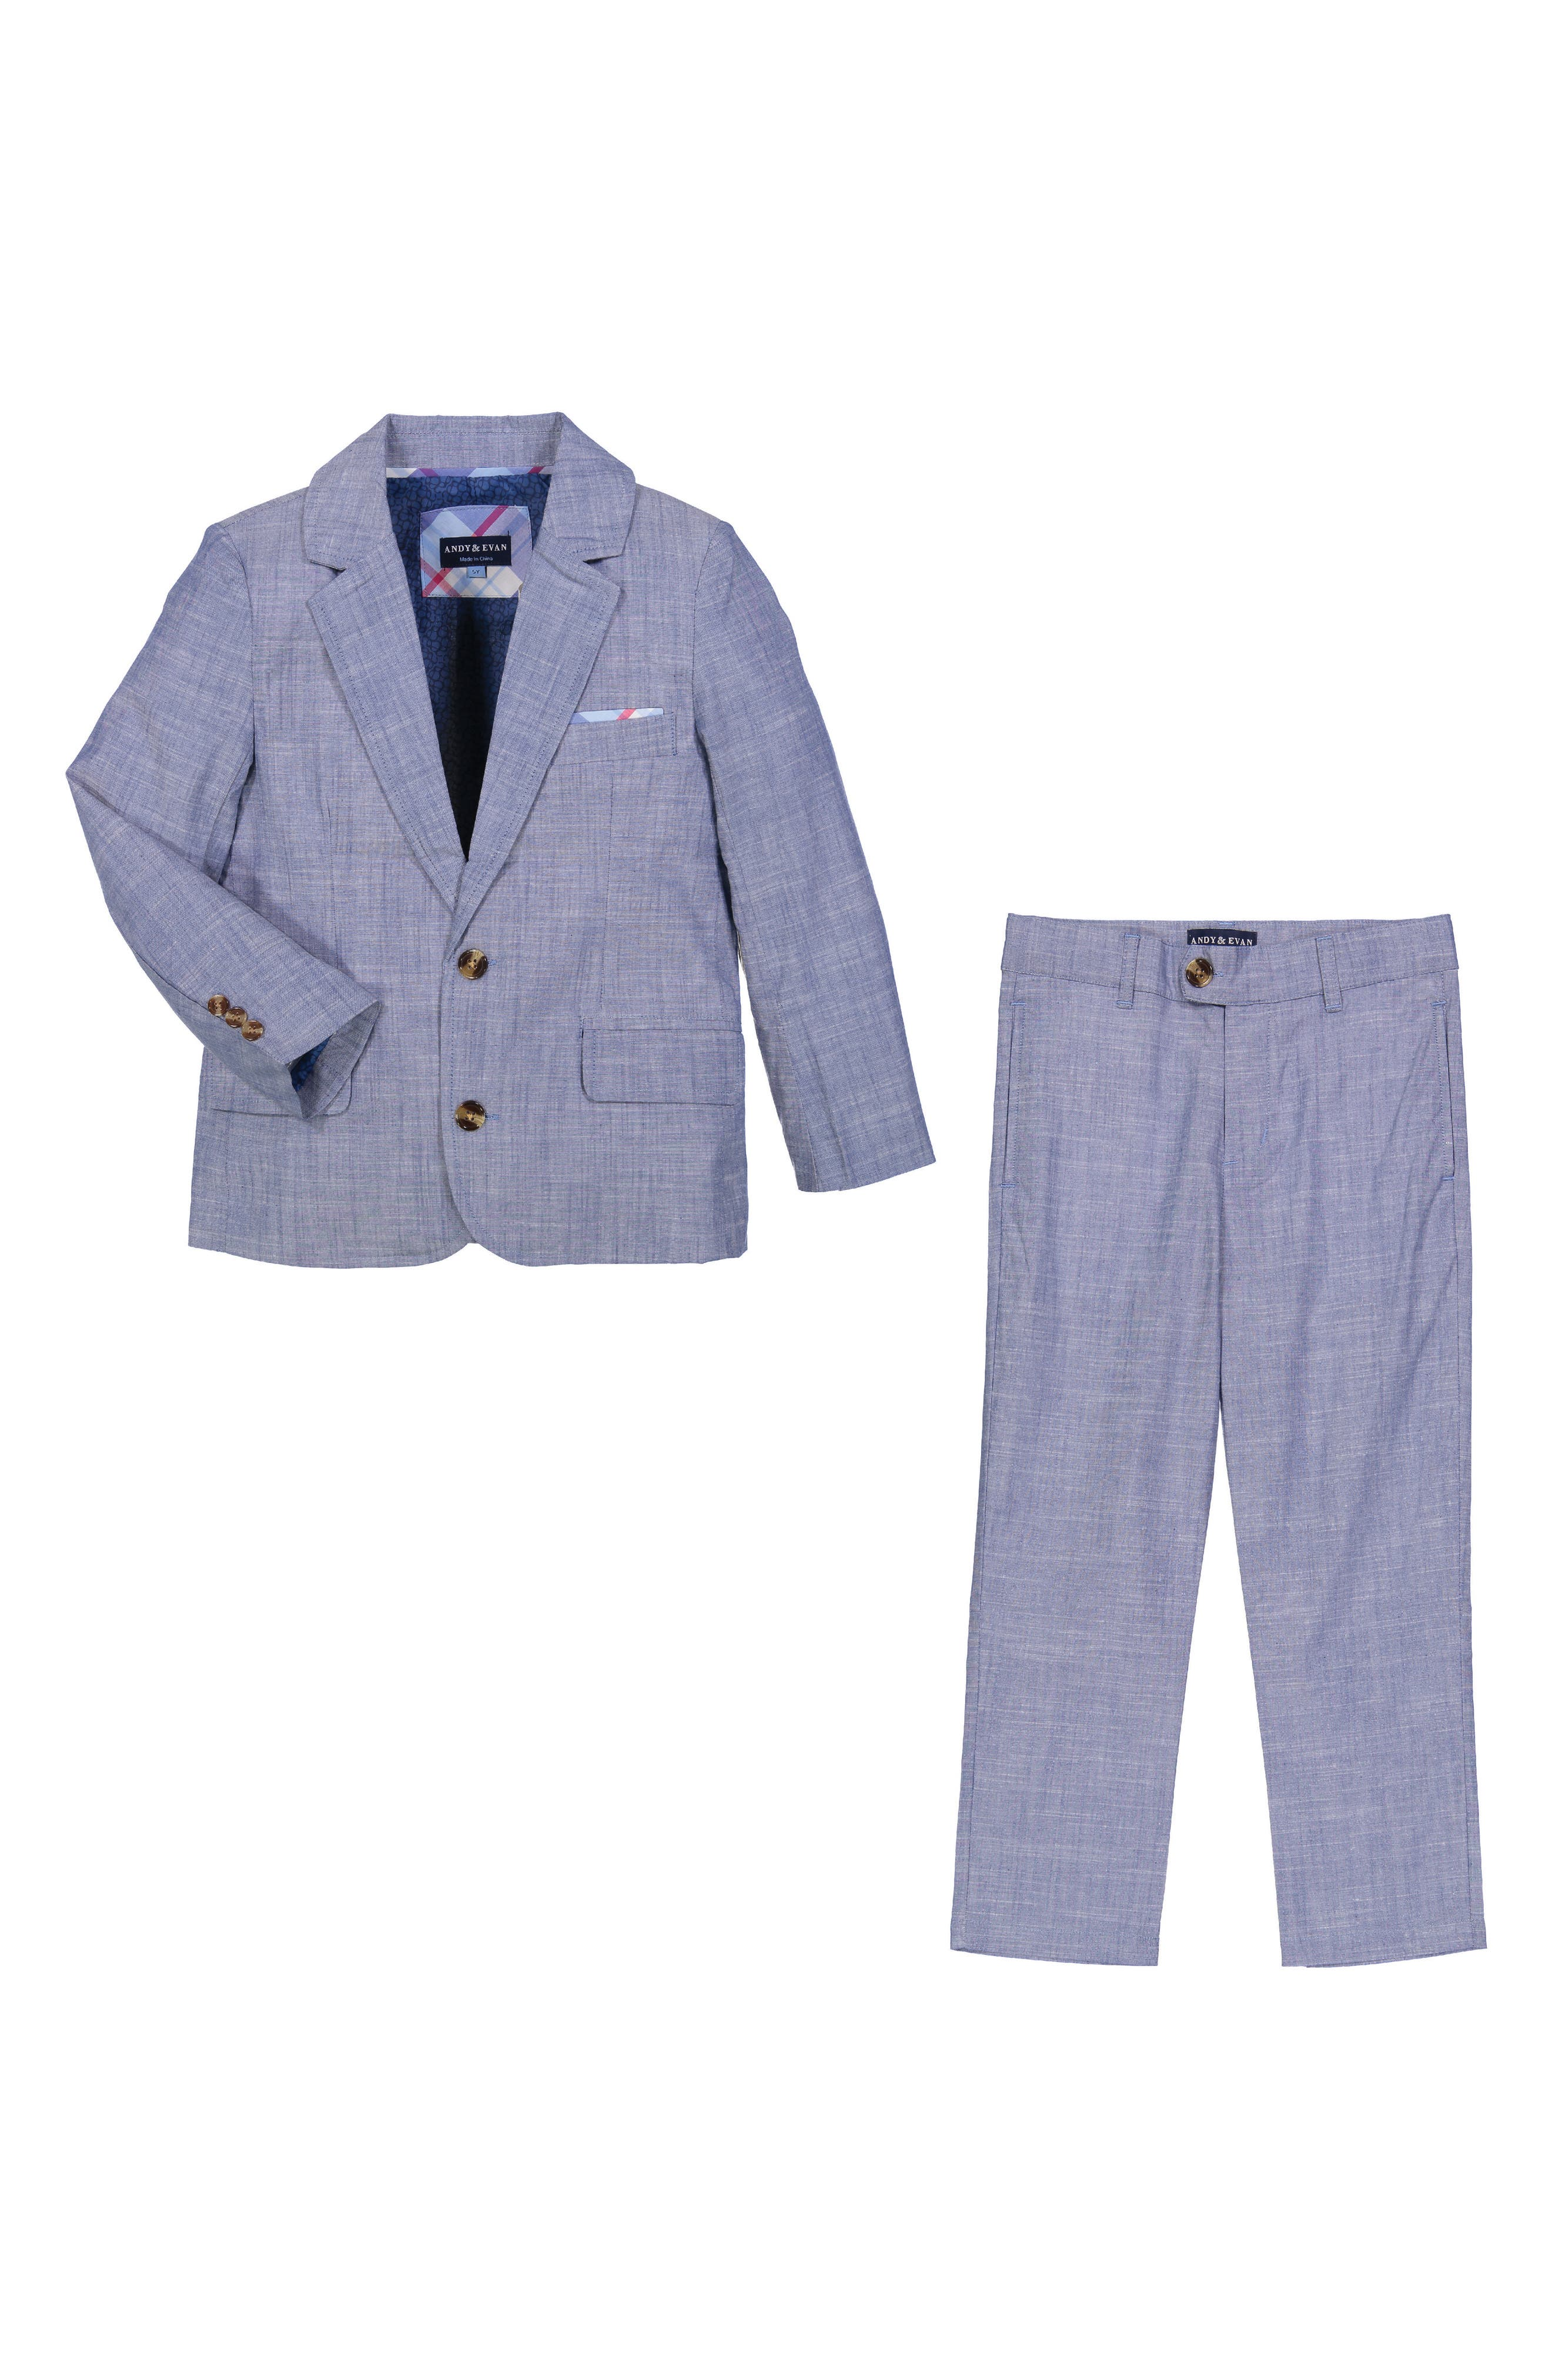 Alternate Image 1 Selected - Andy & Evan Chambray Suit Set (Baby Boys)